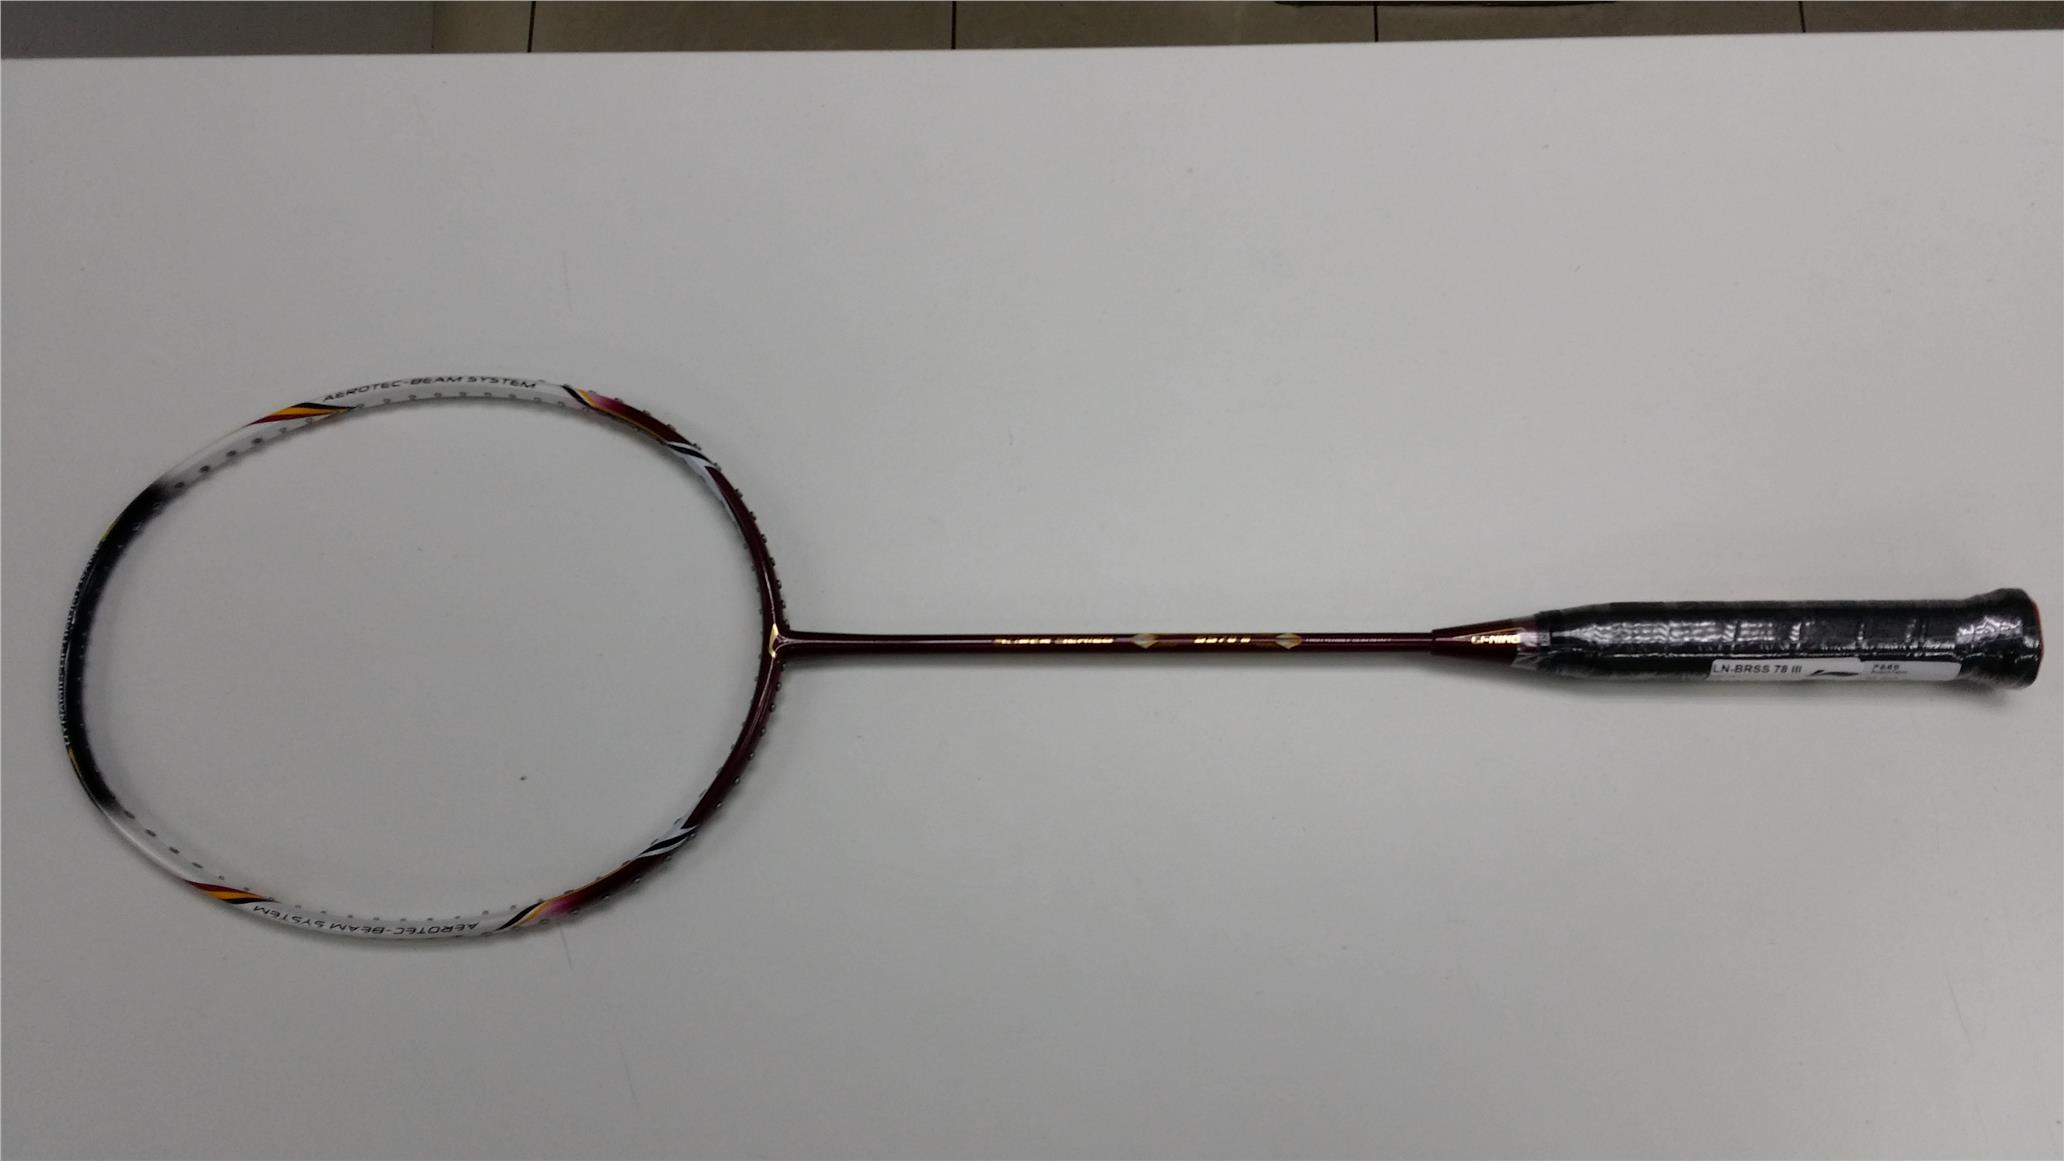 LI-NING SUPER SERIES 78 III